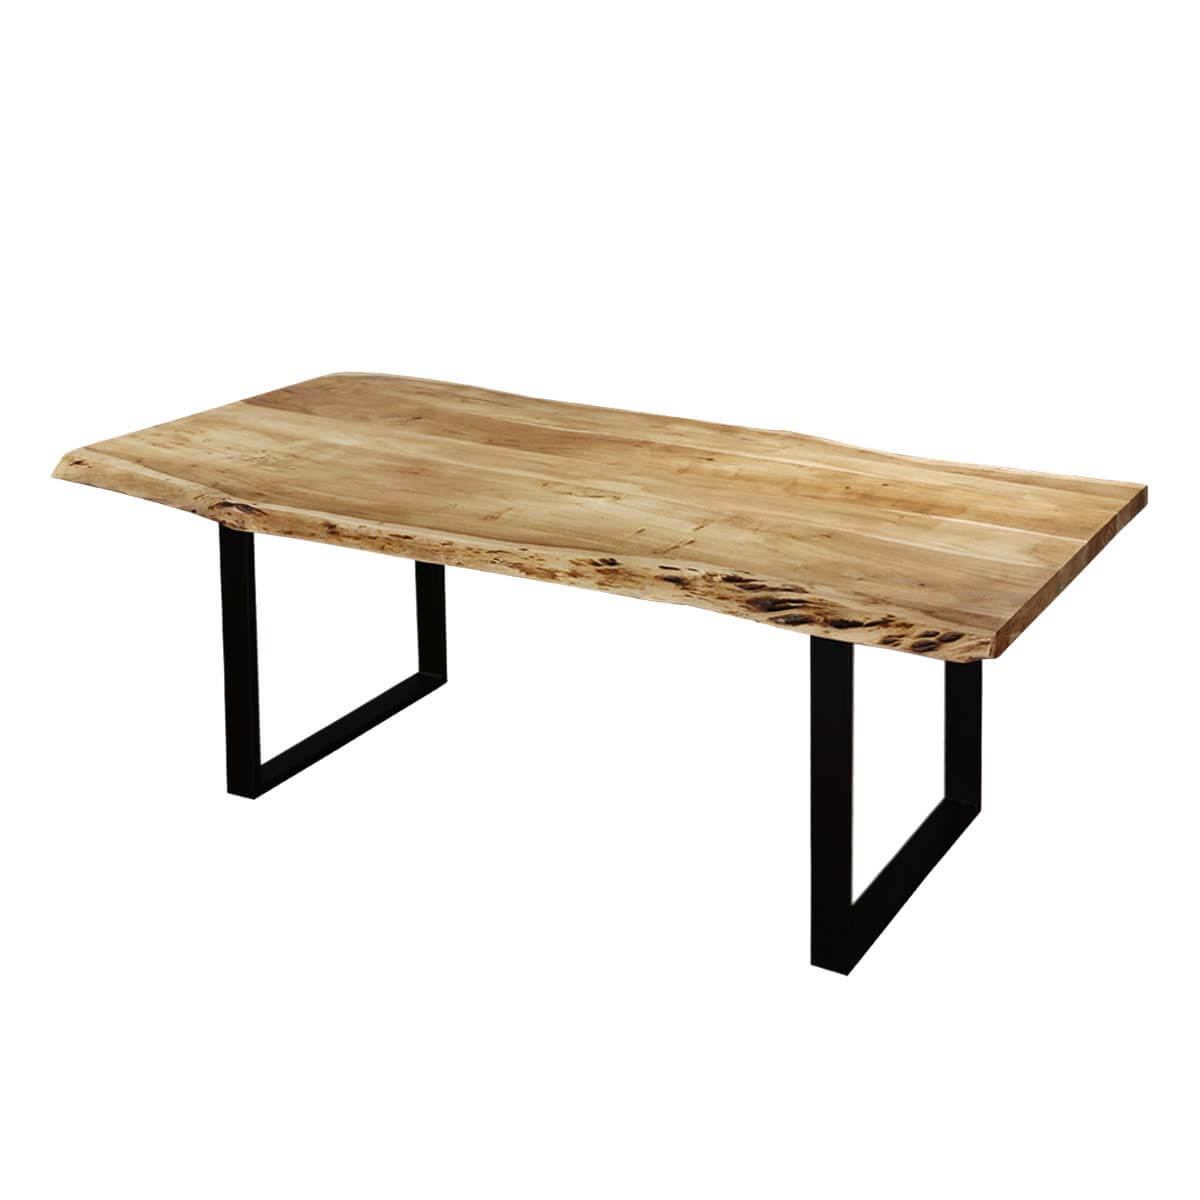 contemporary acacia wood iron live edge dining table. Black Bedroom Furniture Sets. Home Design Ideas